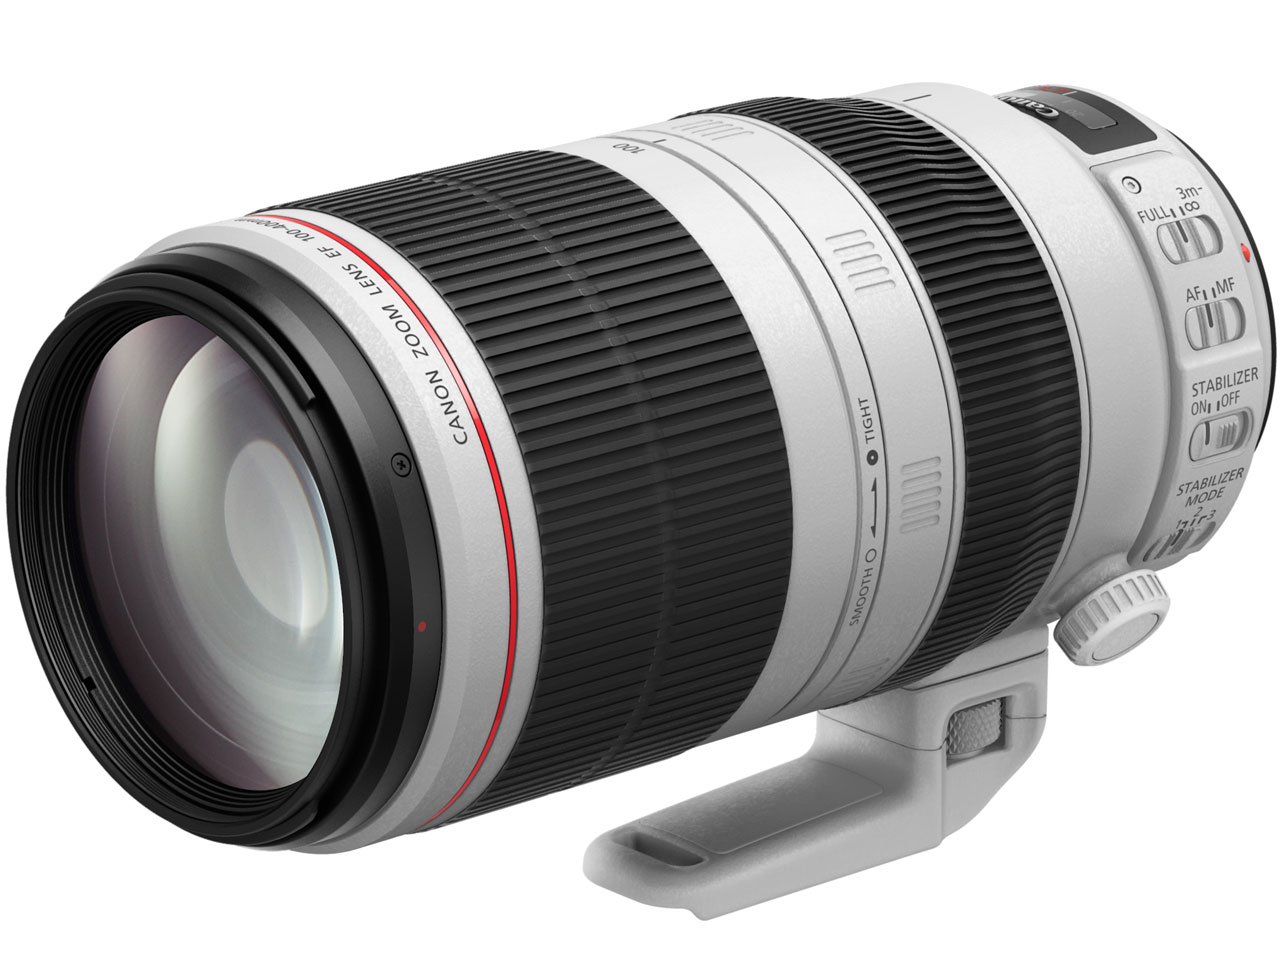 EF100-400mm F4.5-5.6L IS II USM �̐��i�摜